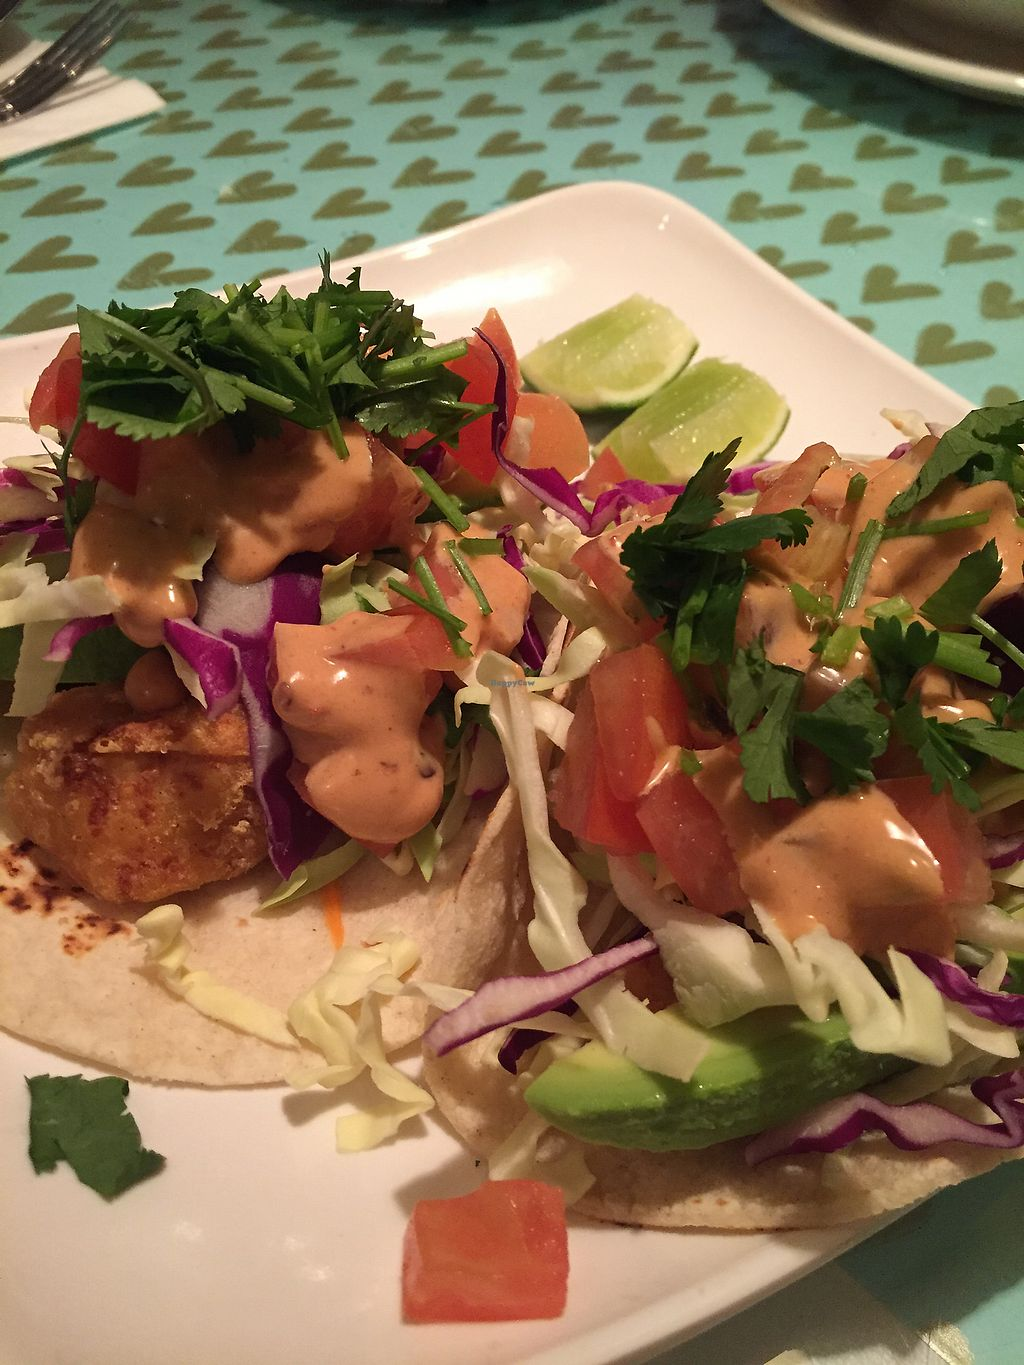 """Photo of Loving Hut - Mira Mesa  by <a href=""""/members/profile/heathenvegan"""">heathenvegan</a> <br/>Ocean fillet tacos <br/> January 14, 2018  - <a href='/contact/abuse/image/25532/346346'>Report</a>"""